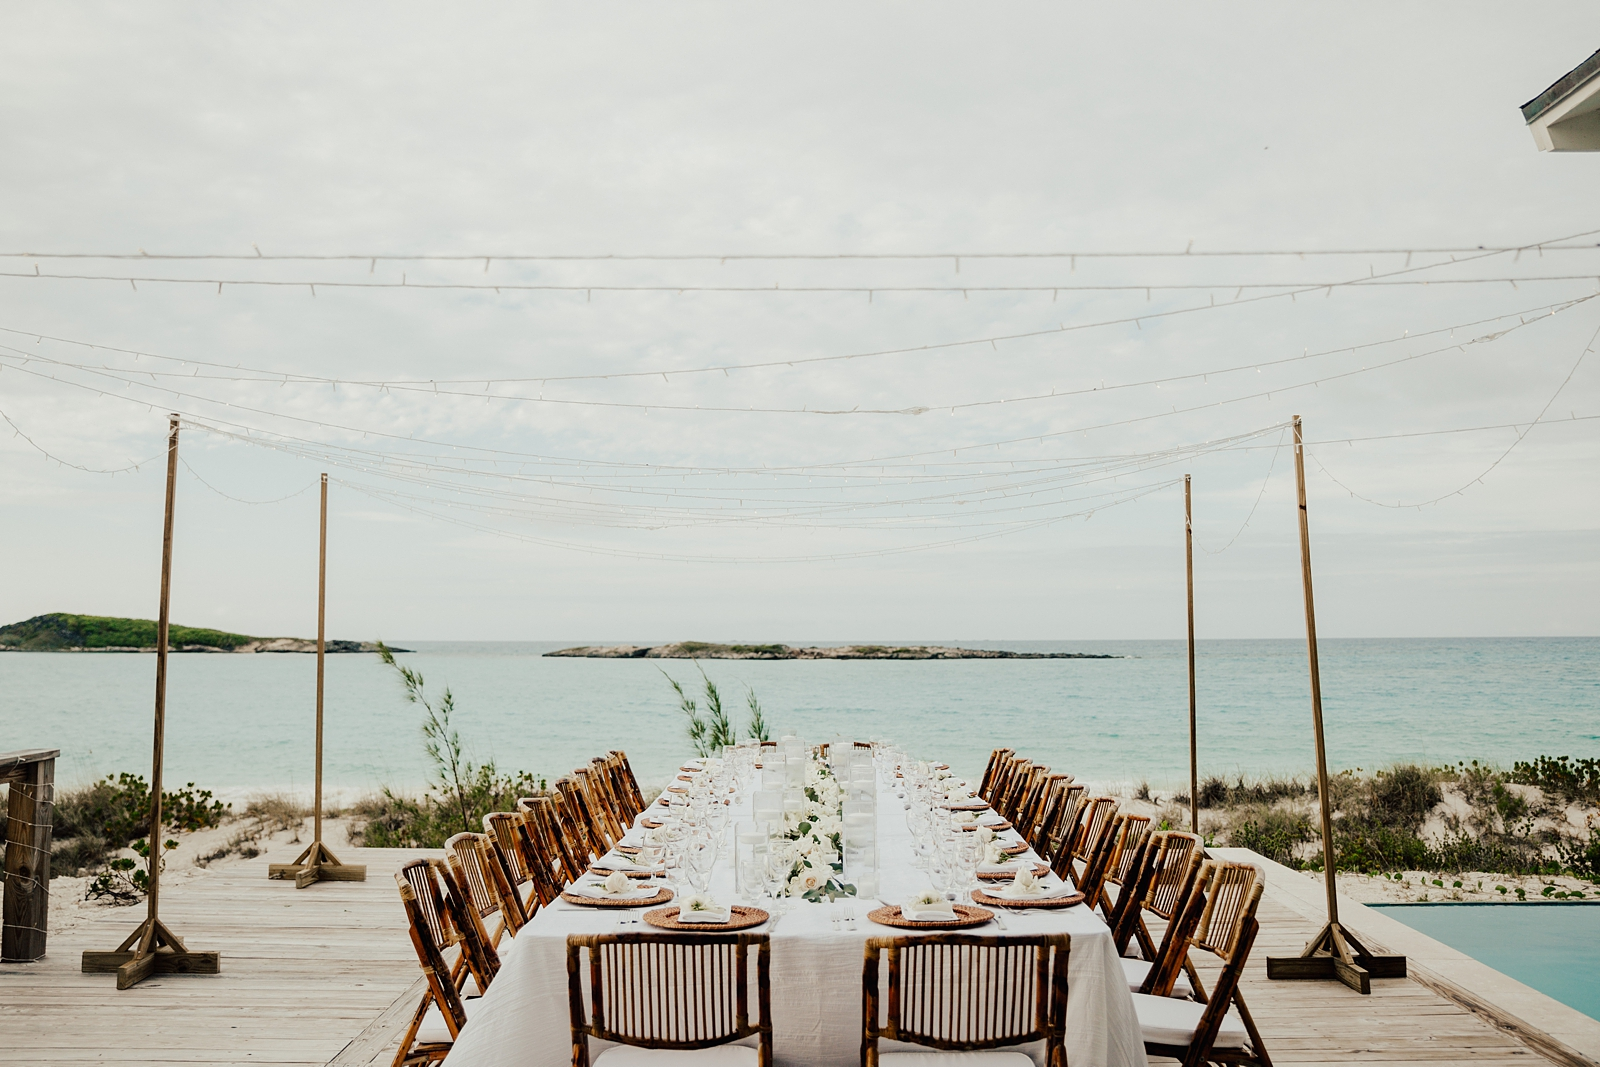 Jenni & Andrew Intimate Beach Destination Wedding in Little Exuma, Bahamas_0517.jpg